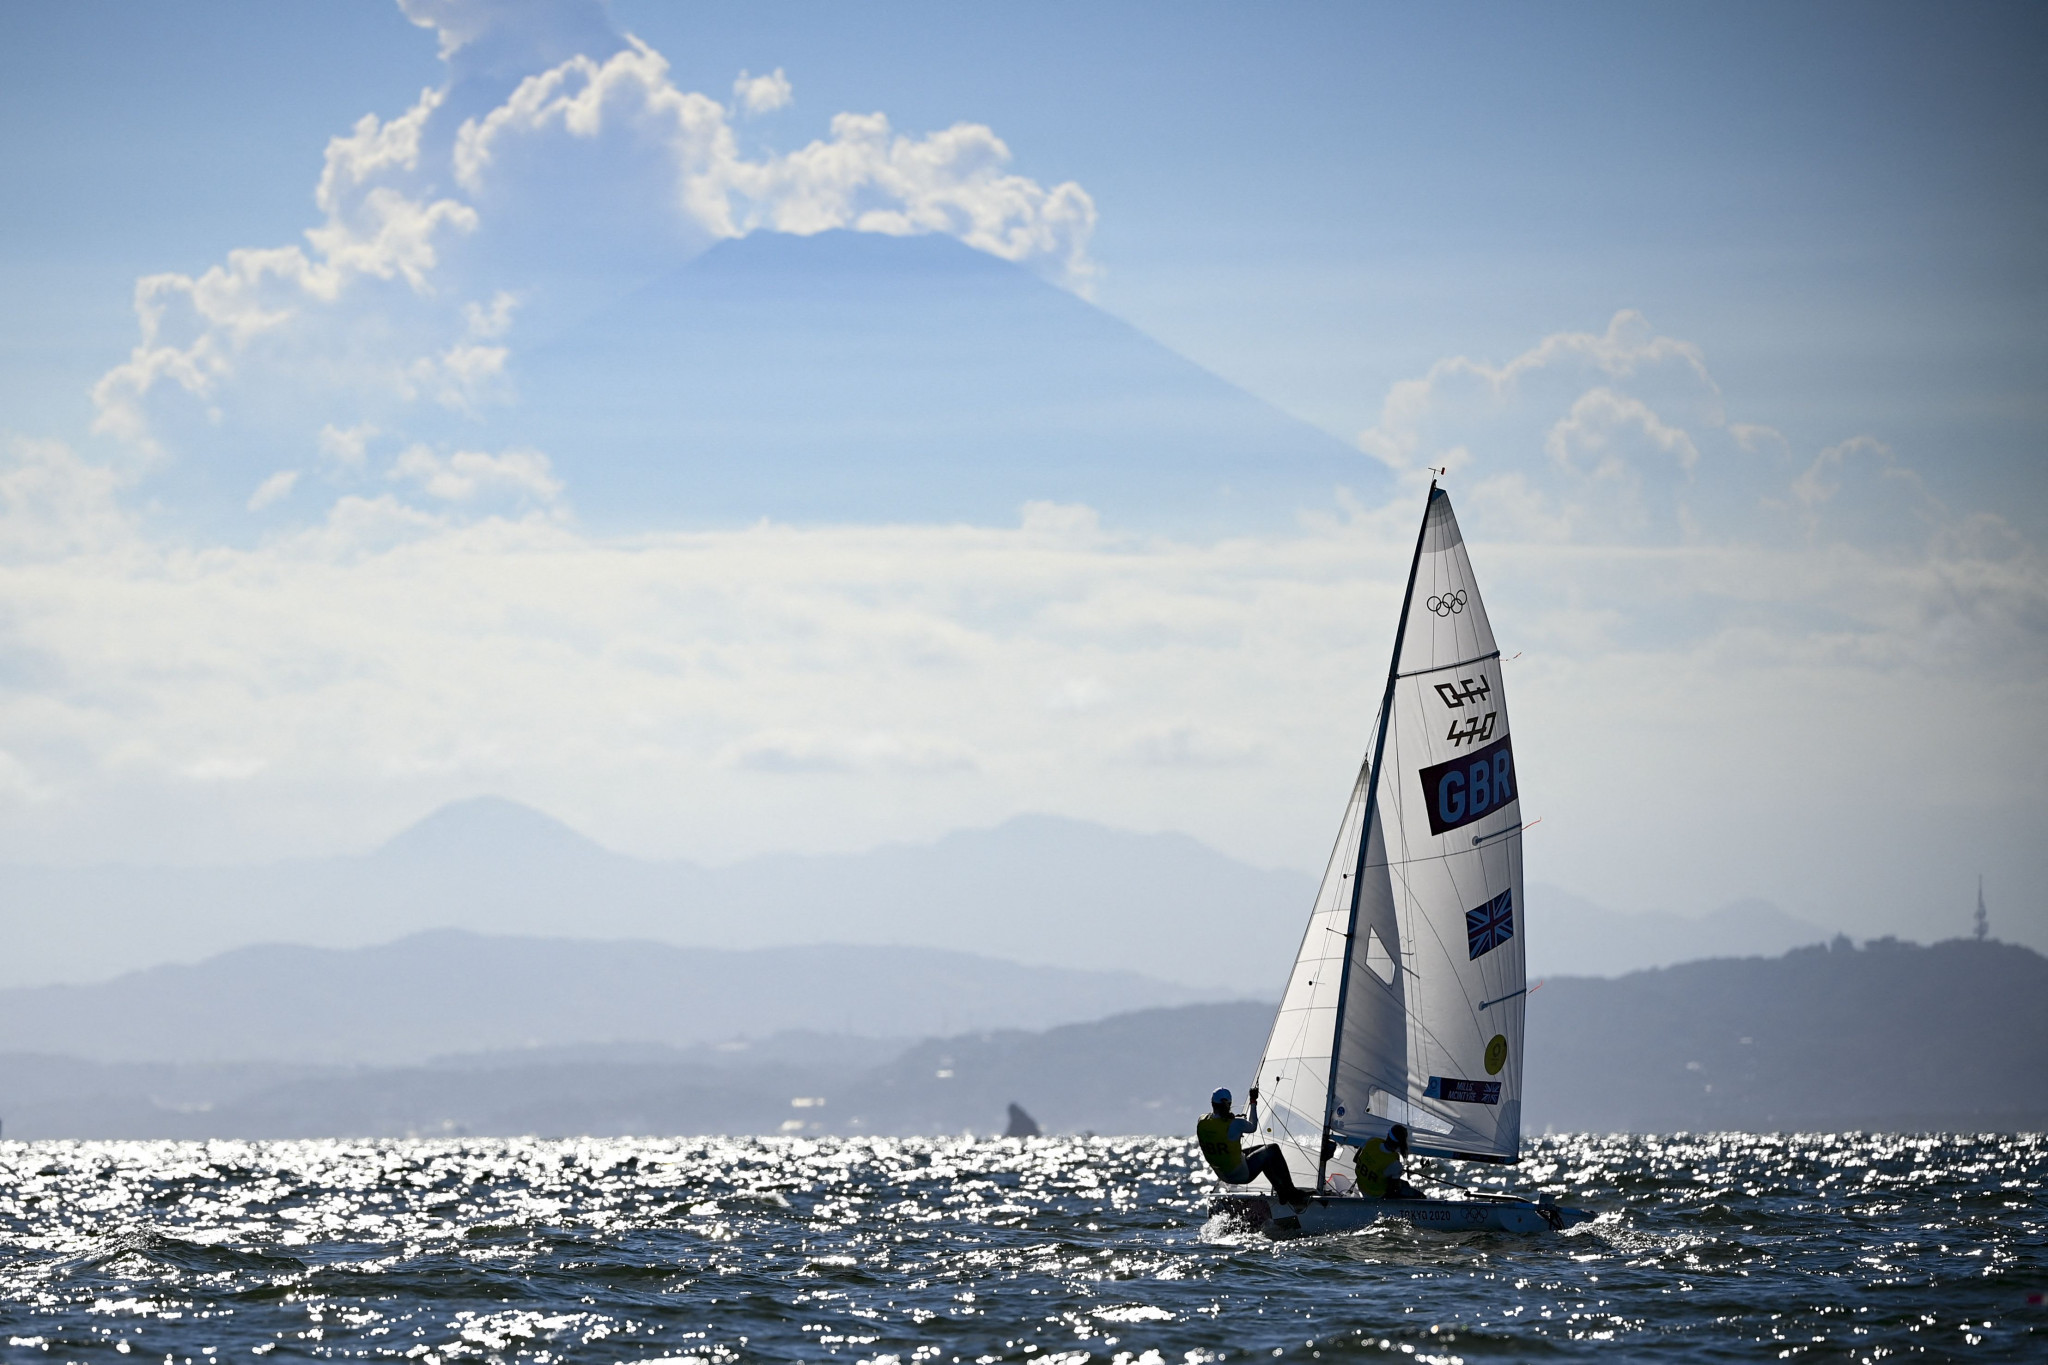 World Sailing cuts loss and expects same Tokyo 2020 dividend as for Rio 2016